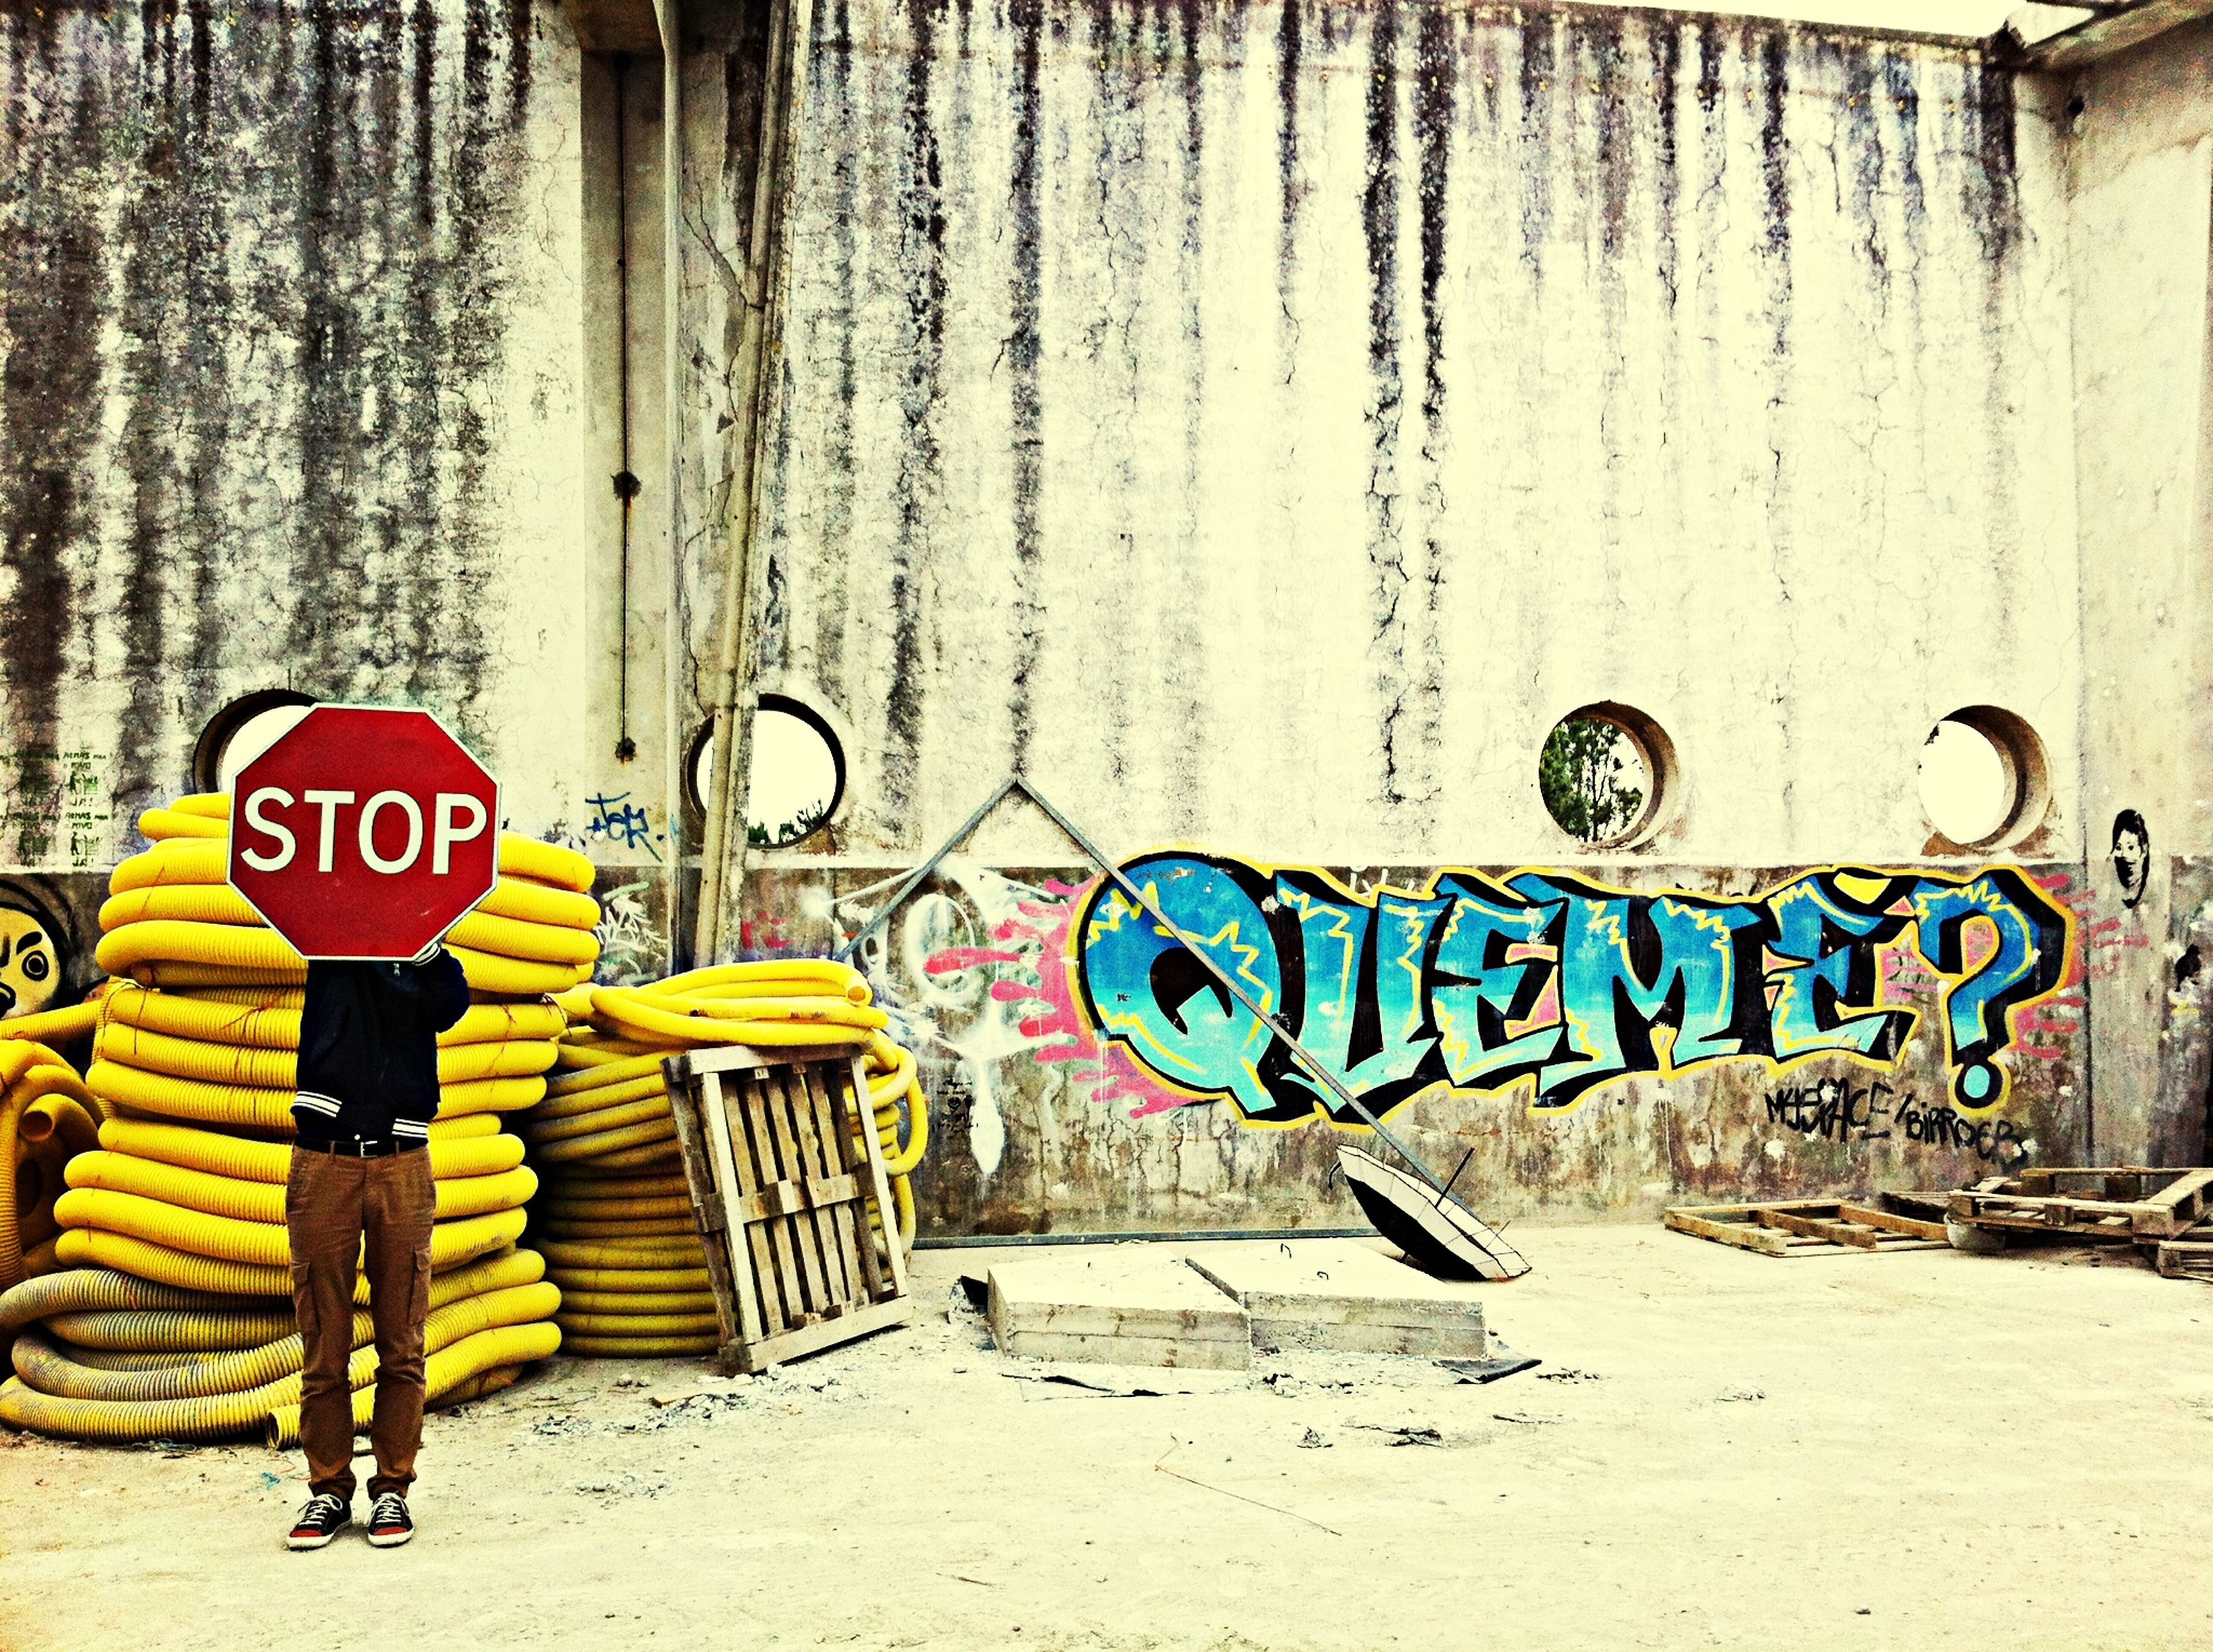 graffiti, text, wall - building feature, western script, communication, built structure, wall, architecture, day, street, men, walking, outdoors, lifestyles, full length, rear view, street art, sign